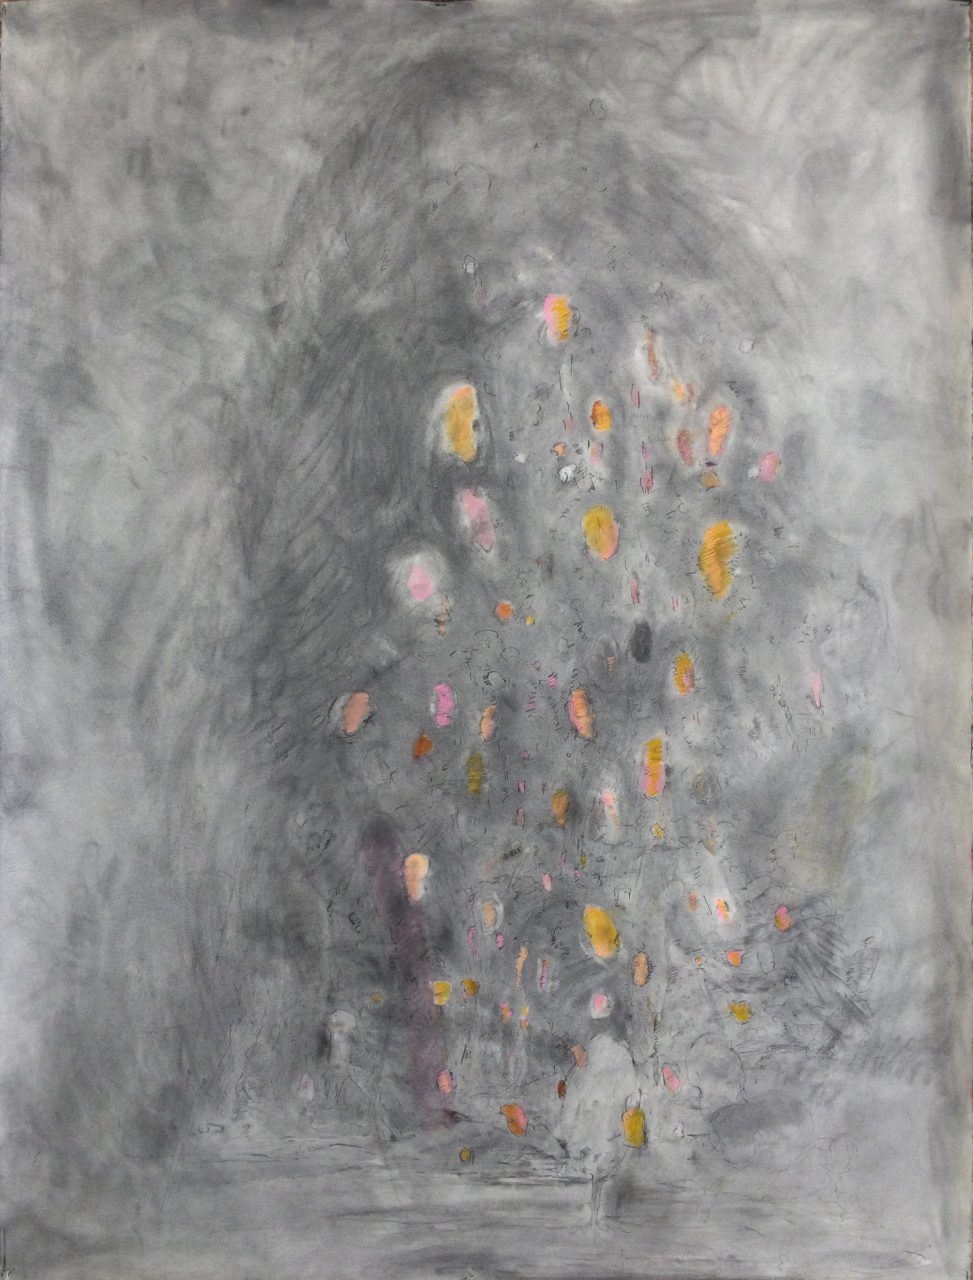 Turn of Day, 2015, graphite dust, pastel on paper, 155 x 113 cm